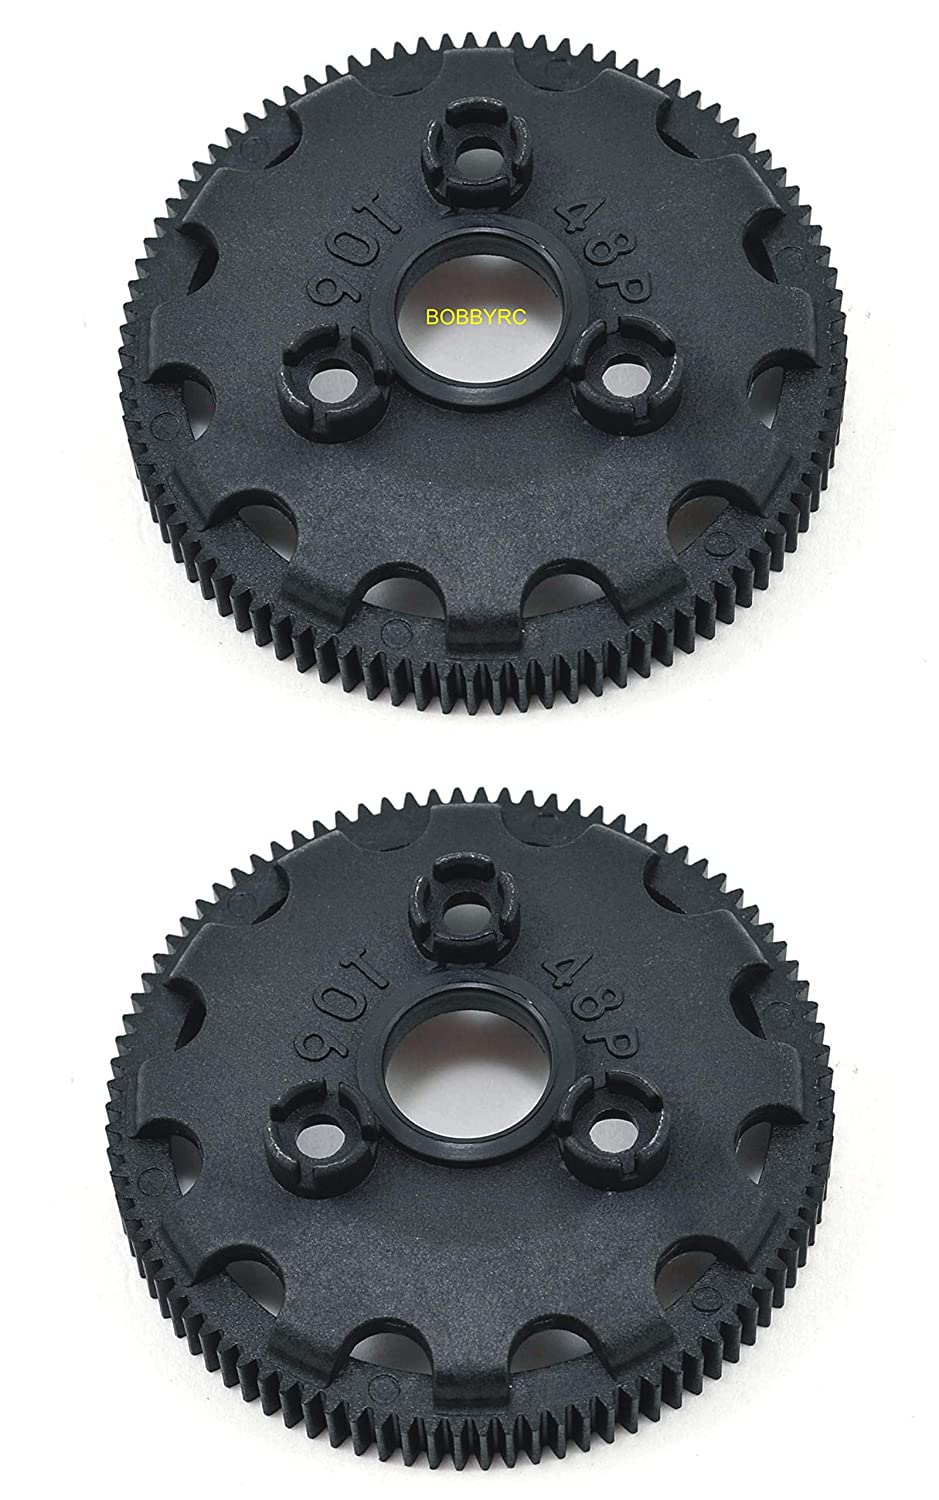 Skully Bandit Bigfoot 2WD XL-5 Trucks RUSTLER Stampede These are Good for The Slash 2pcs TRAXXAS SPUR Gear 4690 SPUR Gear 90T 48P